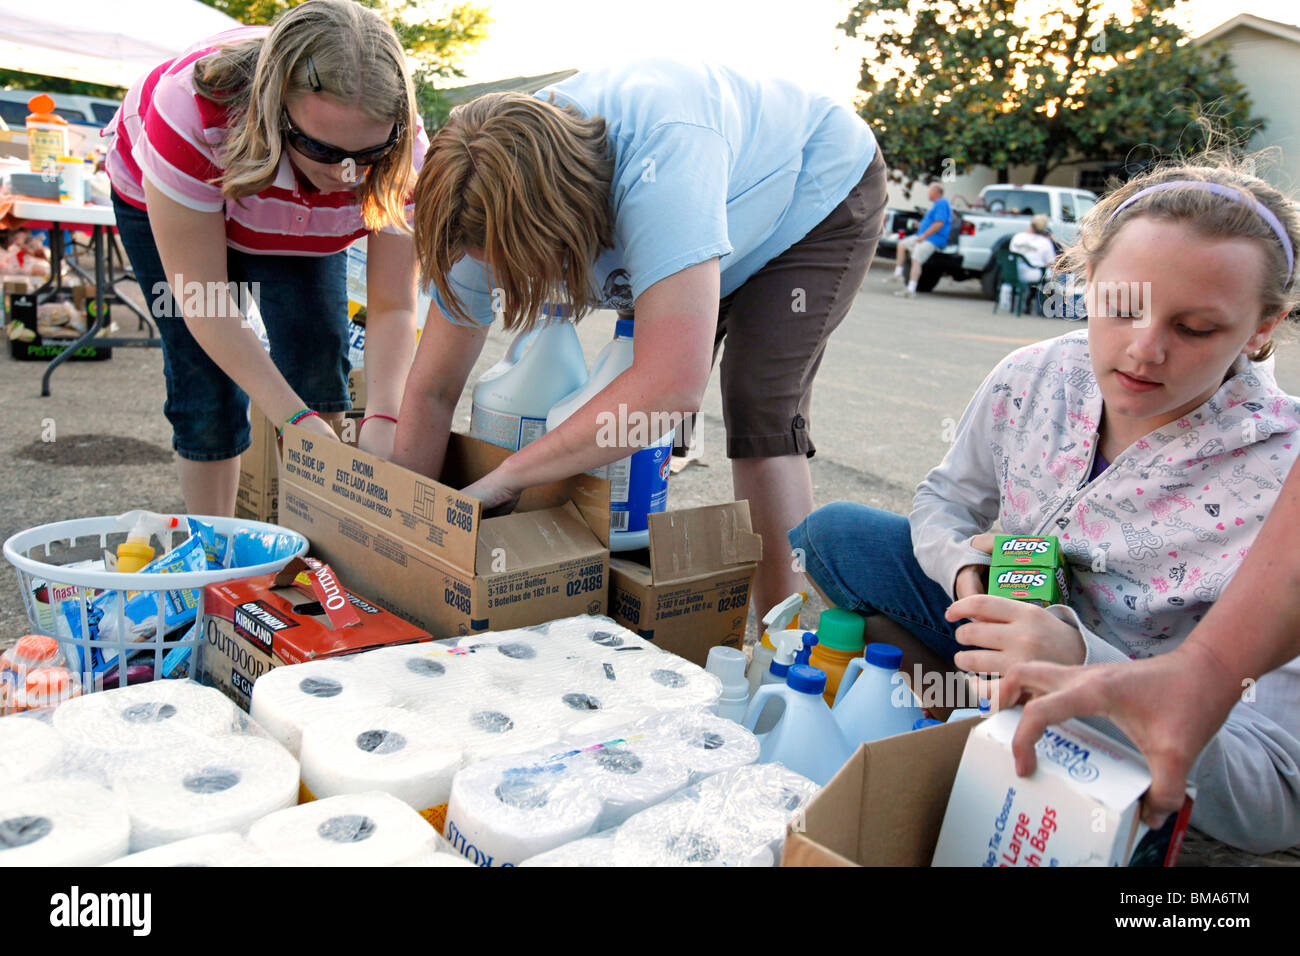 Volunteers sift through donated cleaning supplies to hand out in the Nashville suburb of Bellevue on Saturday, May - Stock Image